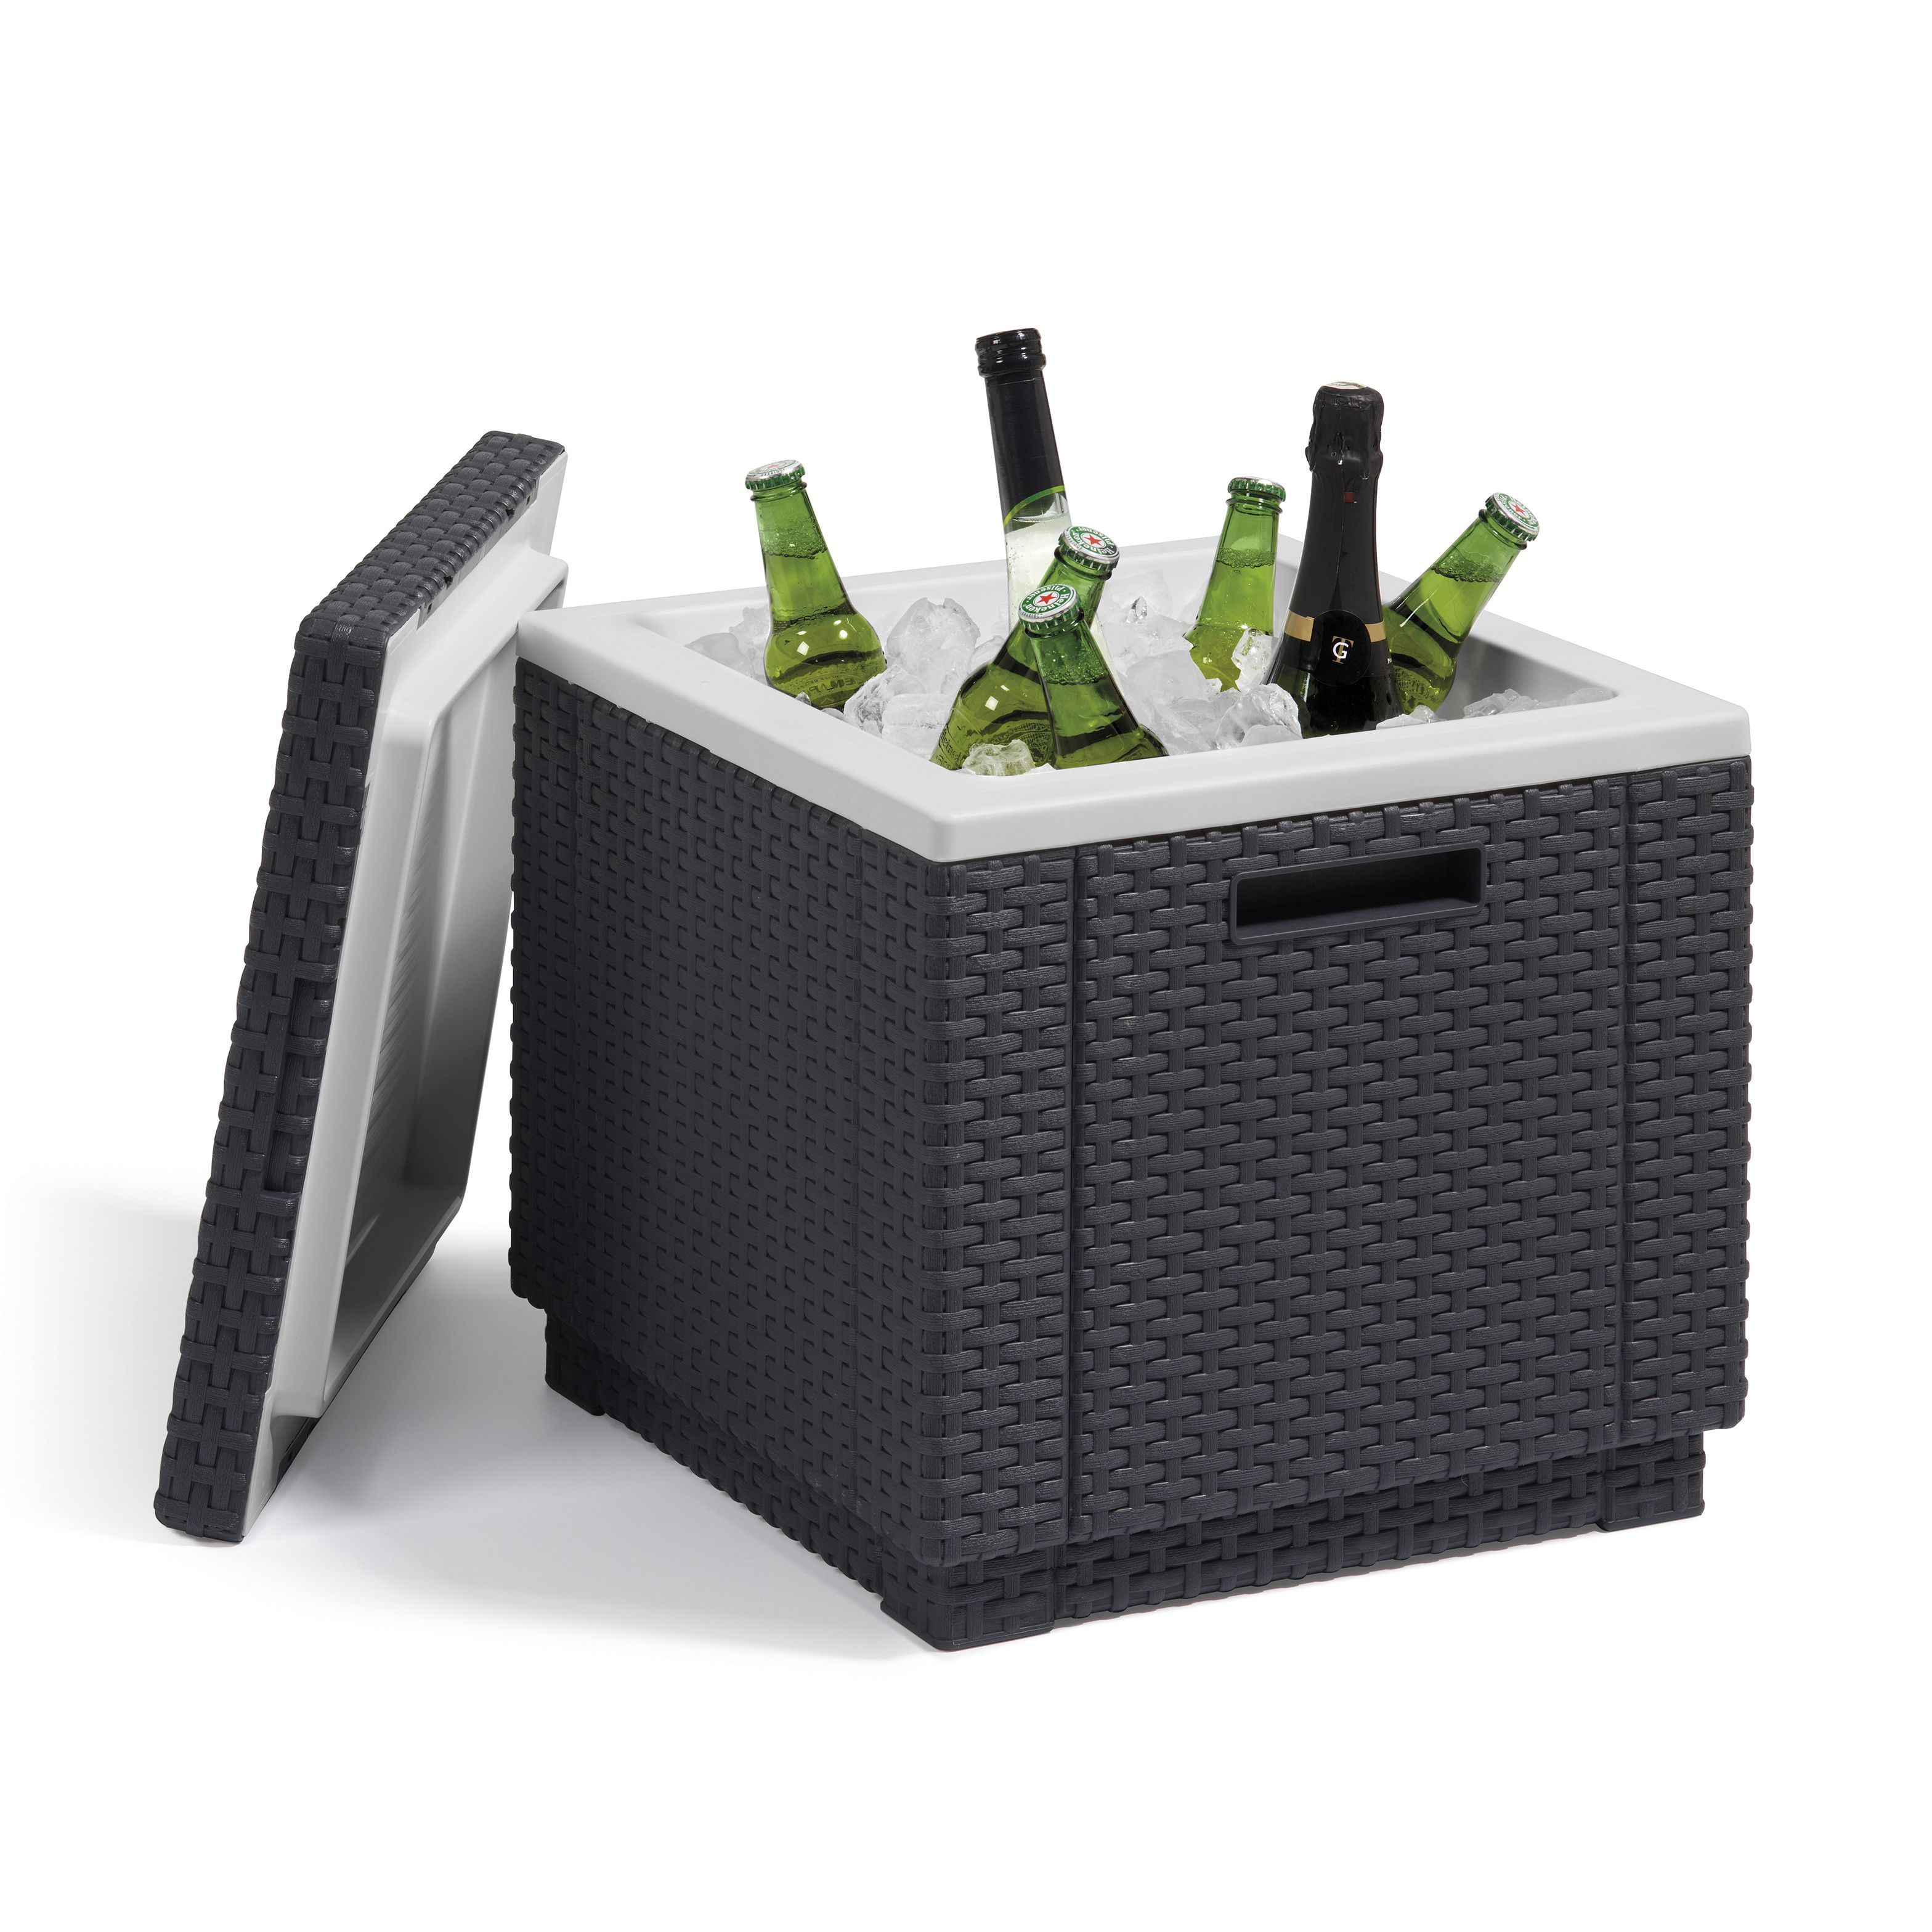 SunTime Outdoor Living Ice Cube Cooler | Yard and Gardening | Pinterest